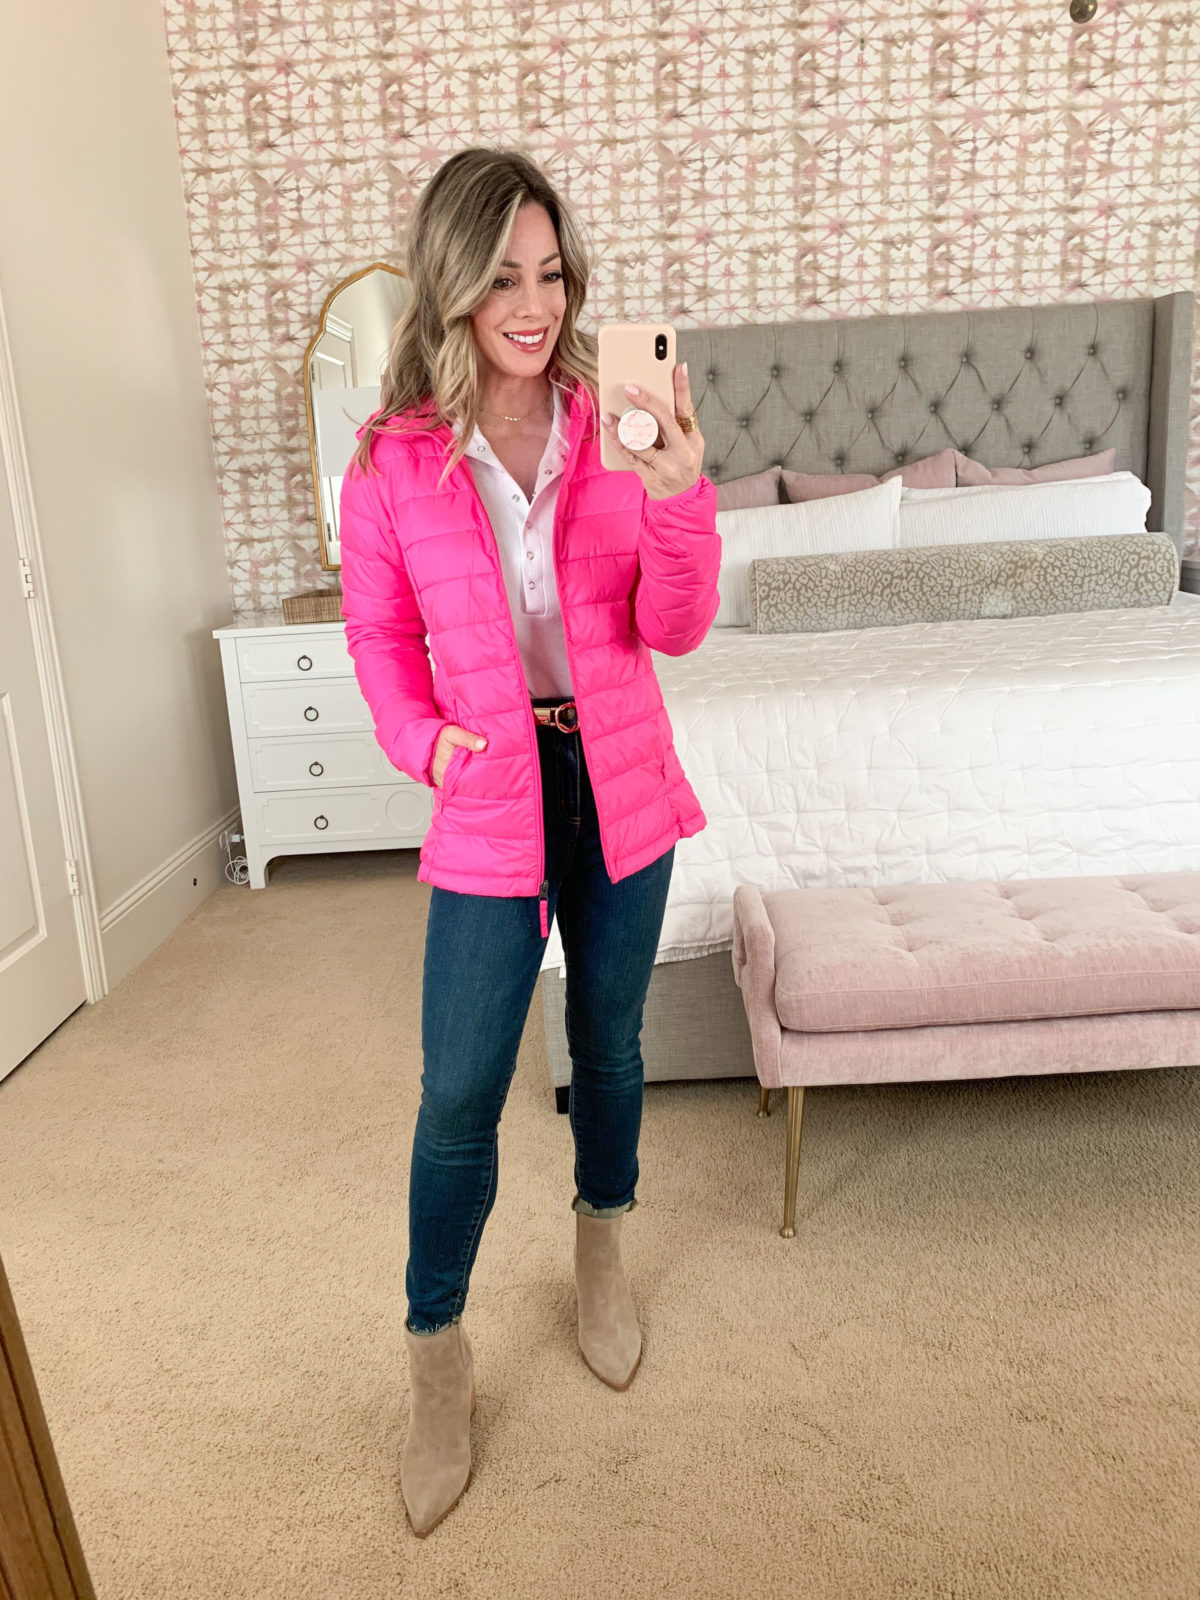 Amazon Fashion Faves, White Button Bodysuit, Pink Puffer Jacket, Skinny Jeans, Booties